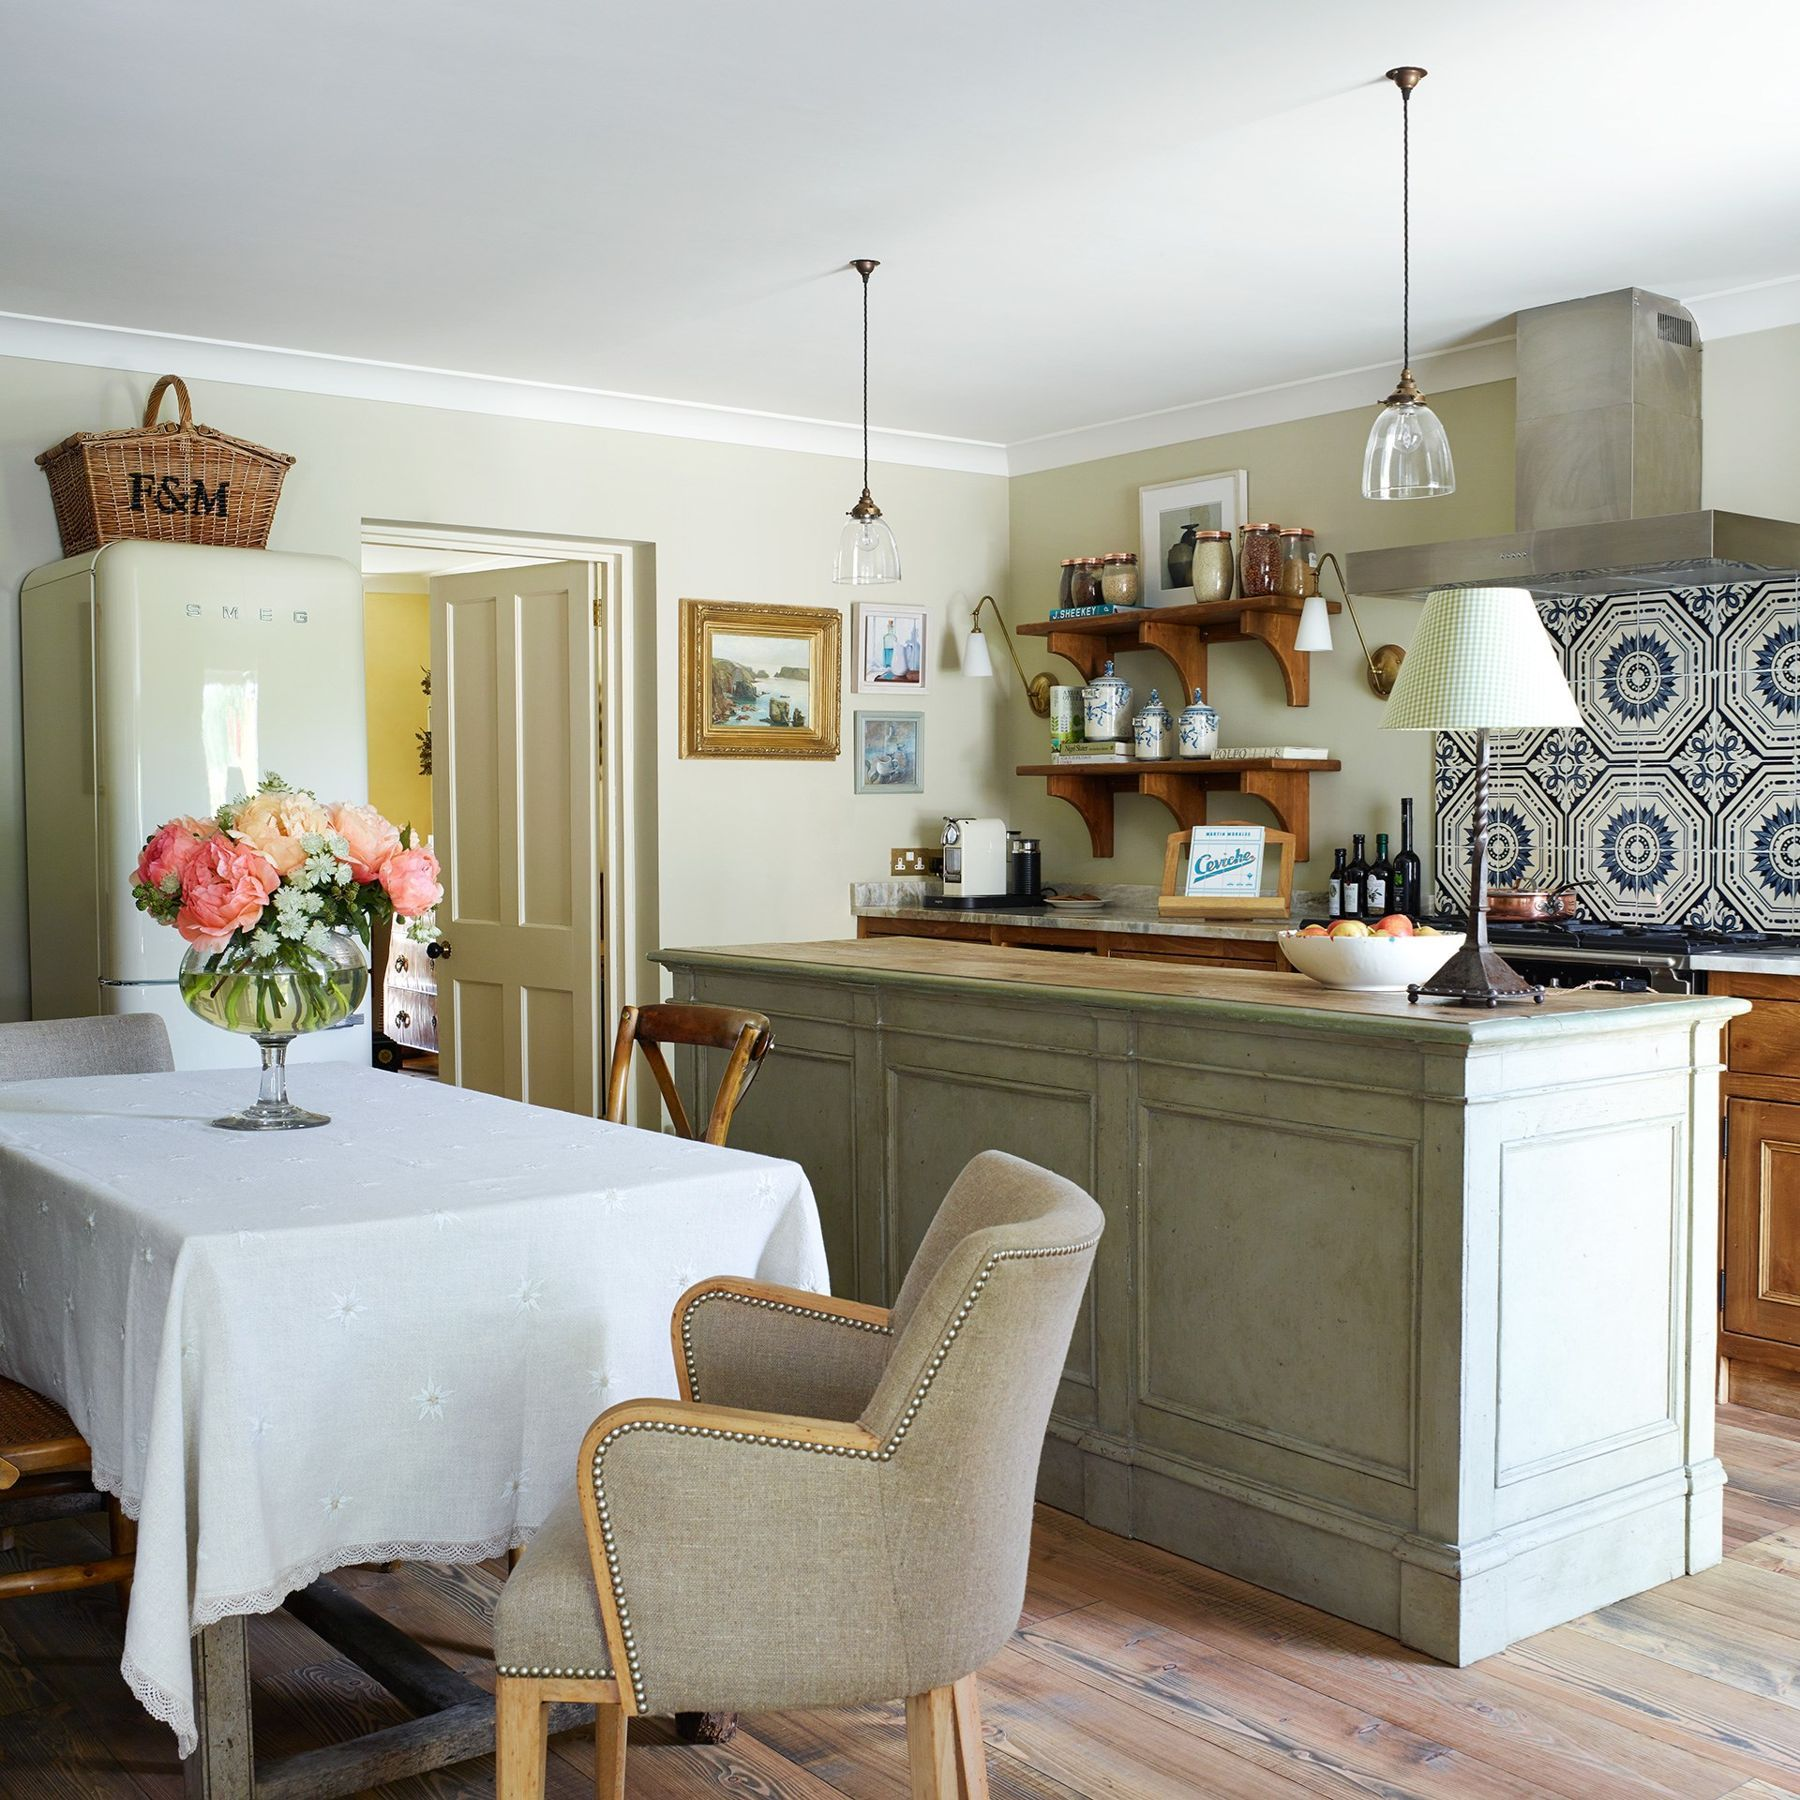 Shabby Küchendeko A London Home With The Charm Of An English Country Cottage